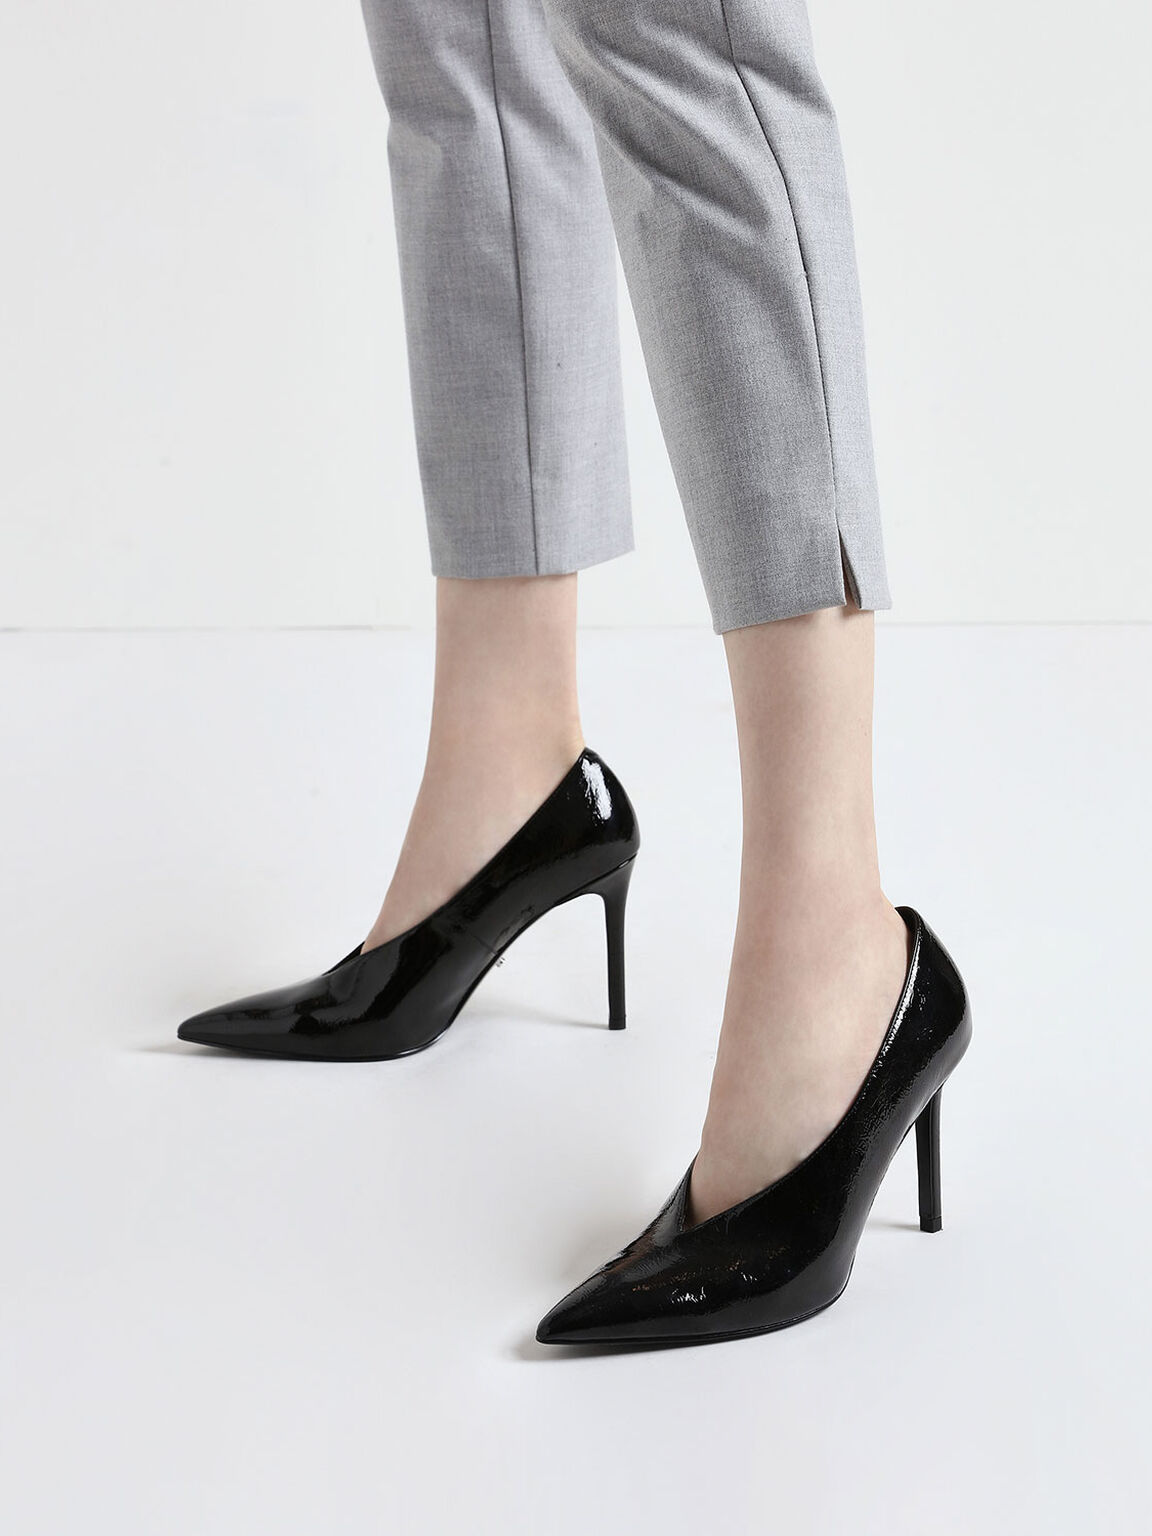 Chain Strap Wrinkled Patent Pumps, Black, hi-res